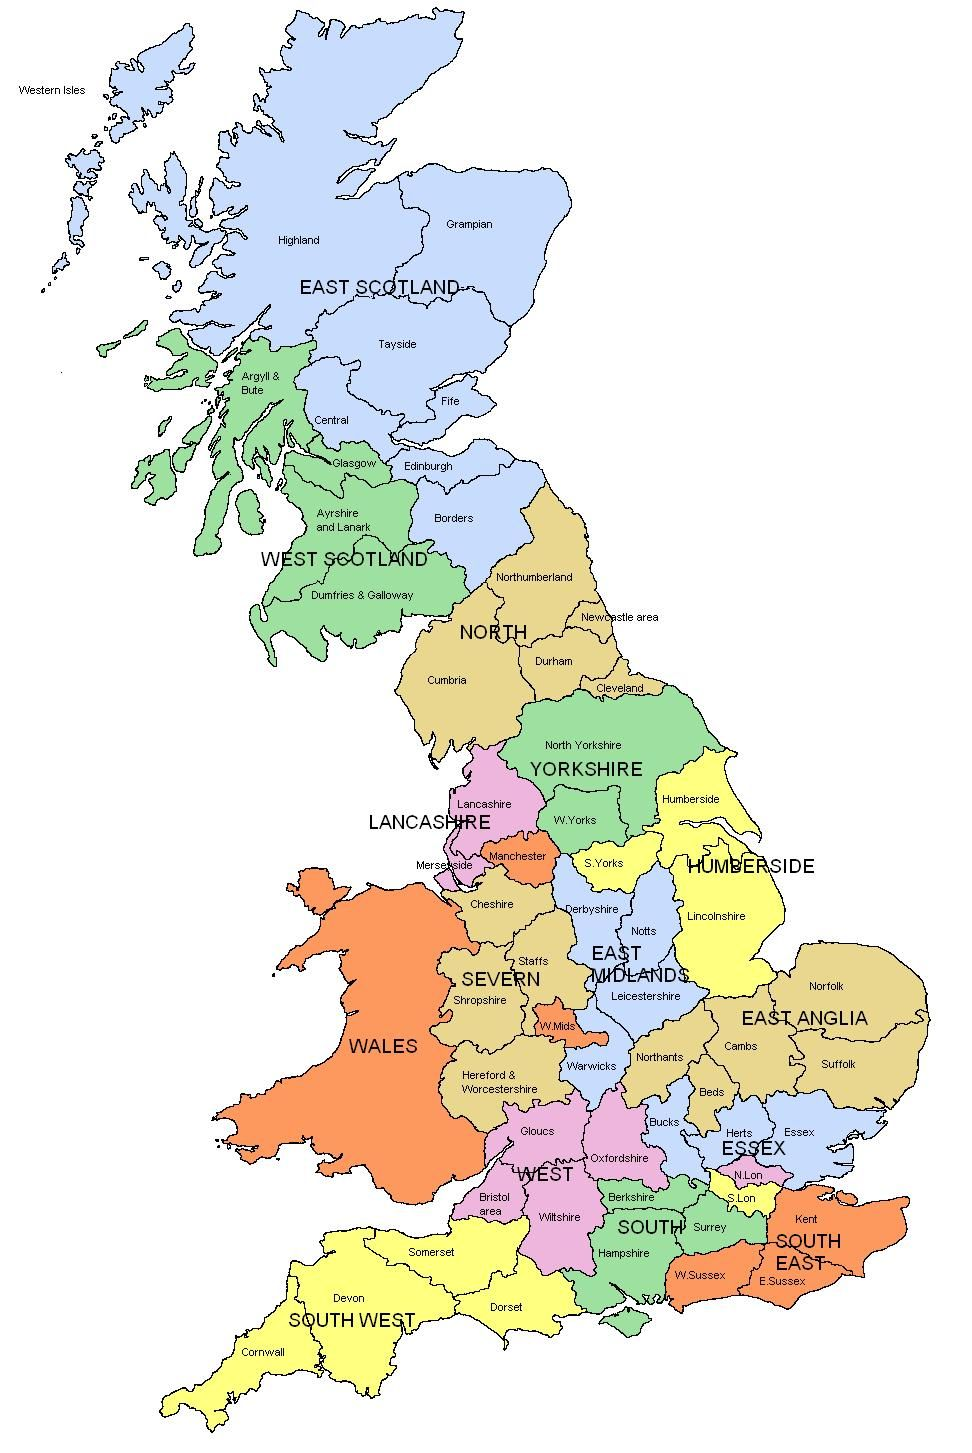 Map Of England Showing Cornwall.Map Of Regions And Counties Of England Wales Scotland I Know Is